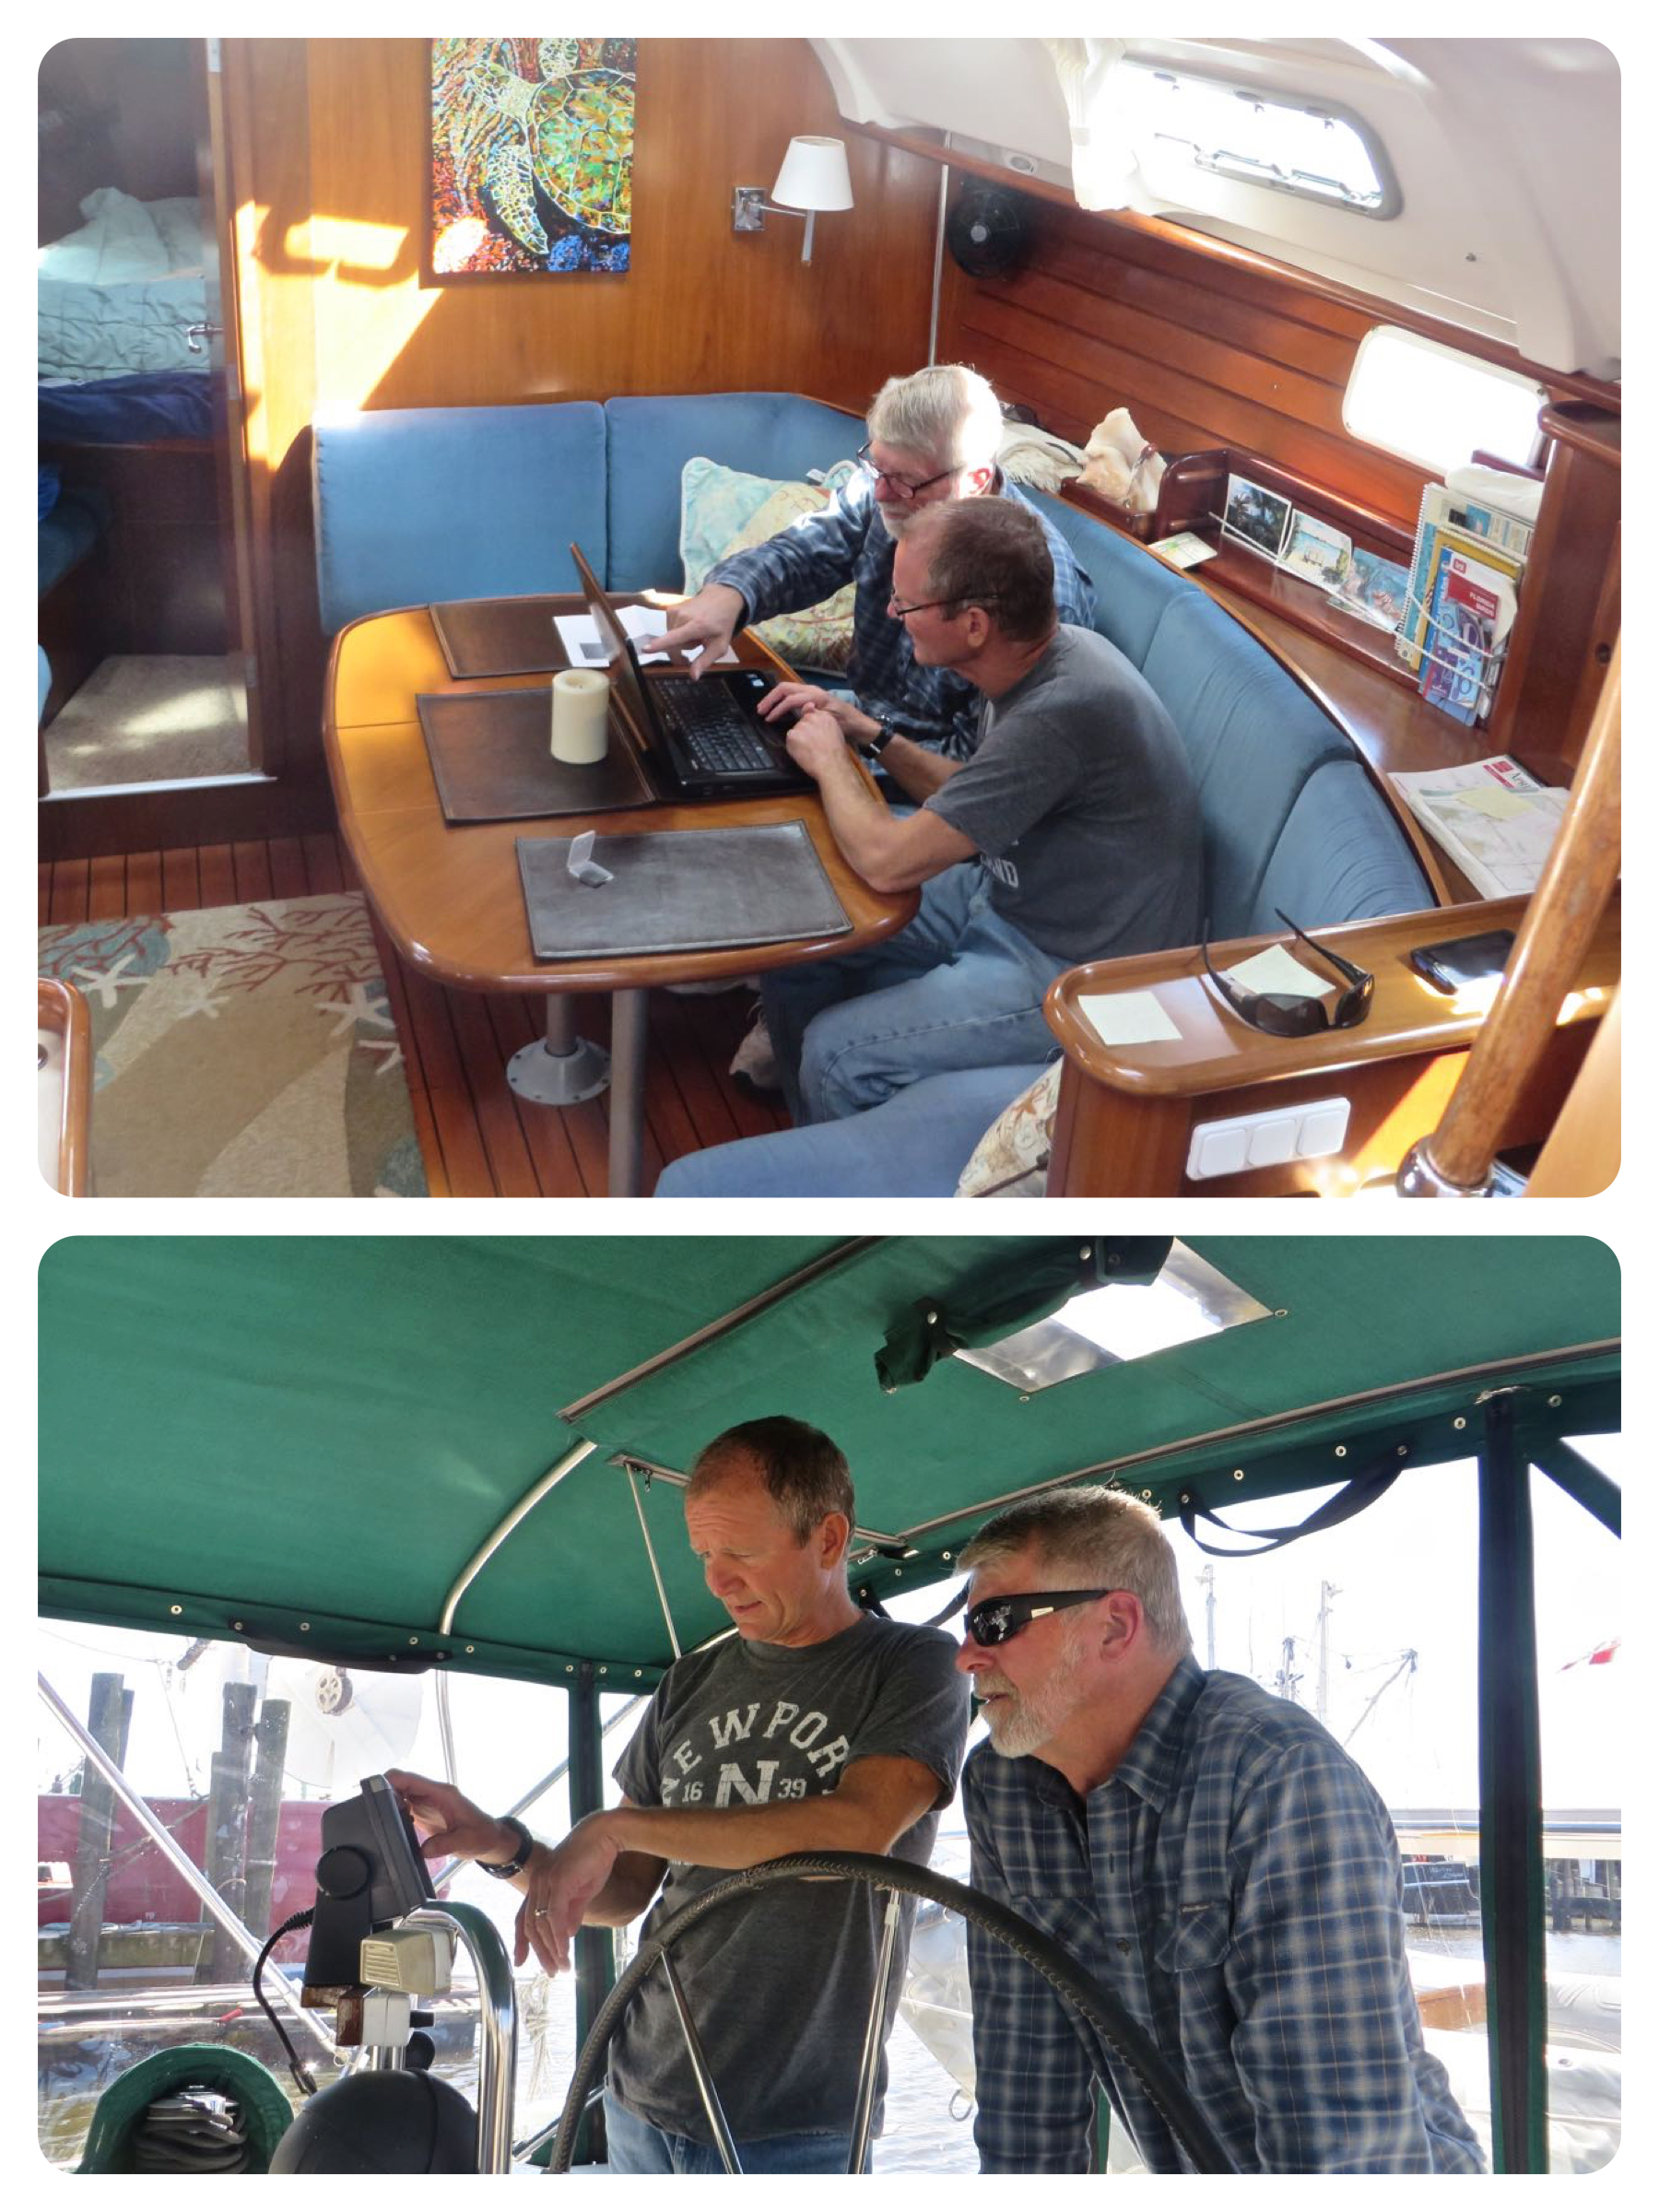 The Captains of Cutting Class and Kindred Spirit had time to problem solve a Garmin chart plotter issue. Problem solving - two heads are better than one. Problem solved successfully!